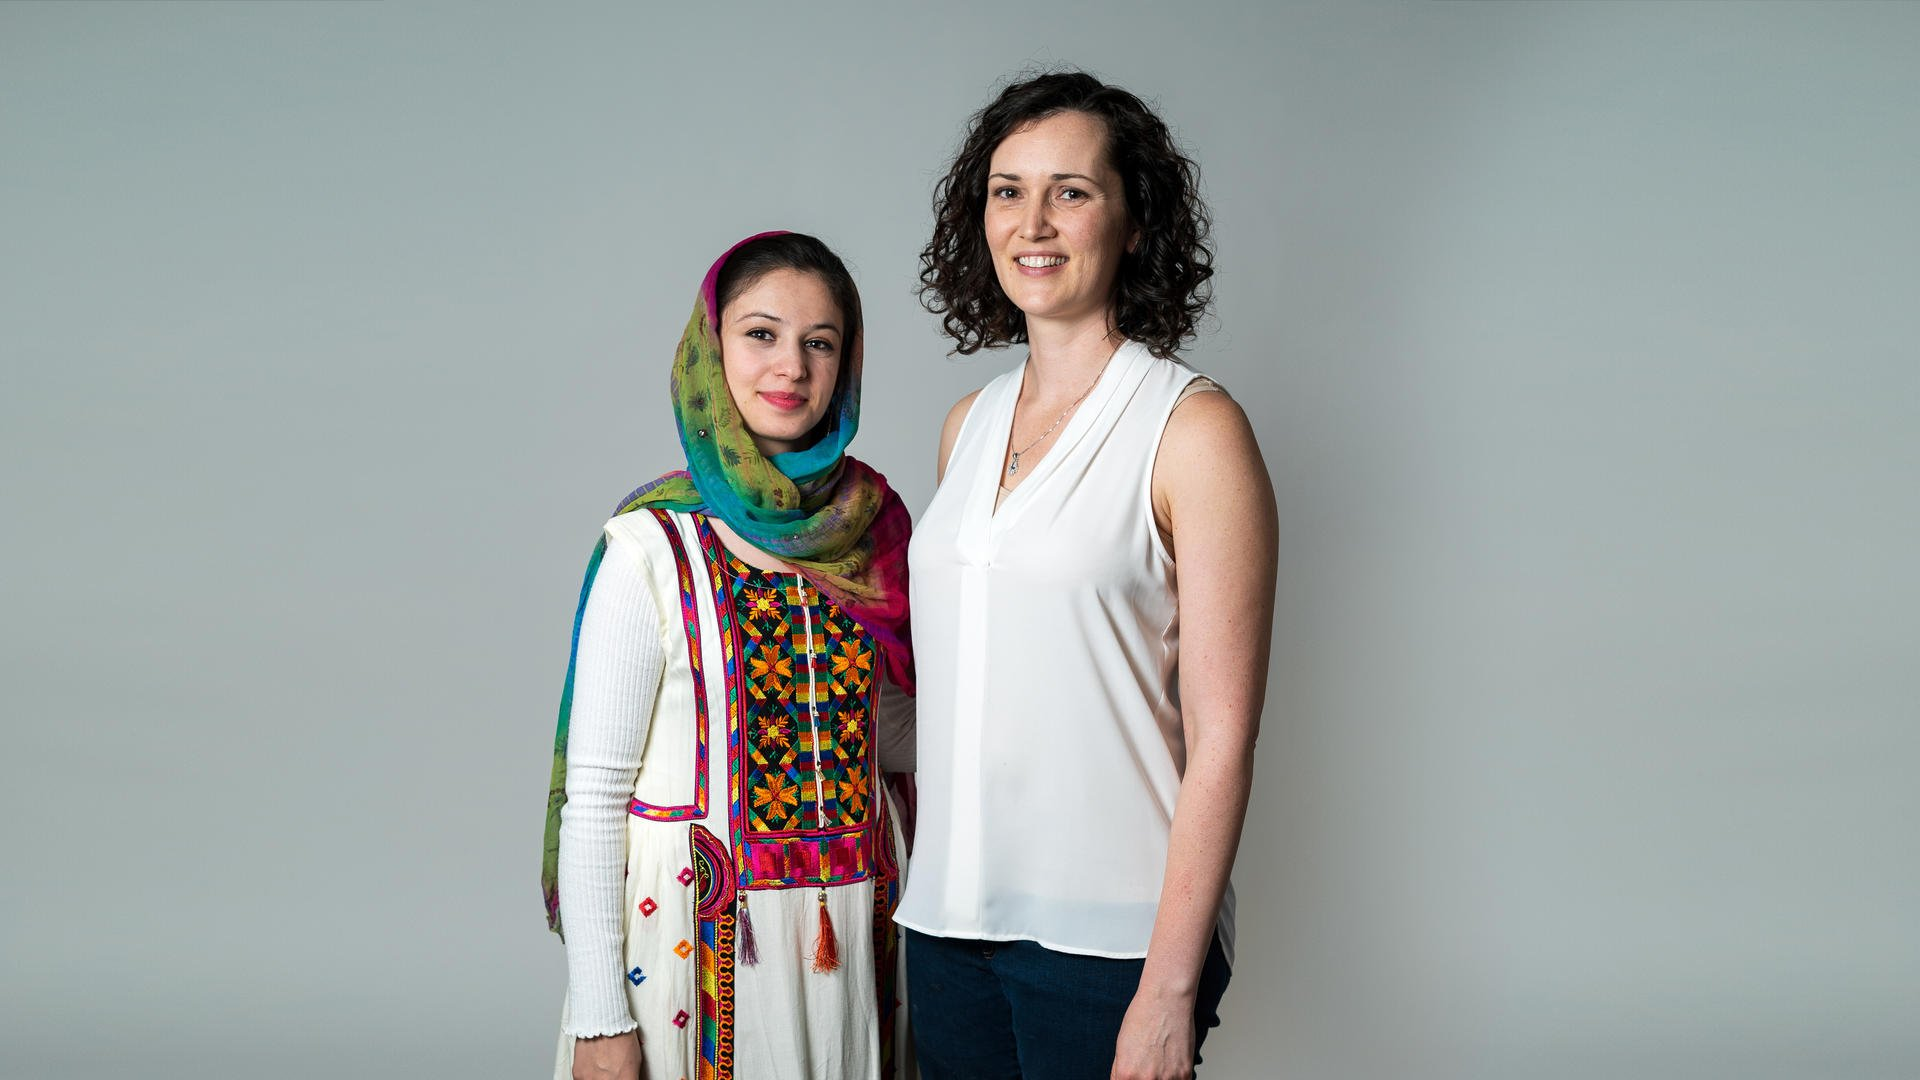 Muska, left, from Afghanistan with her friend Mary.